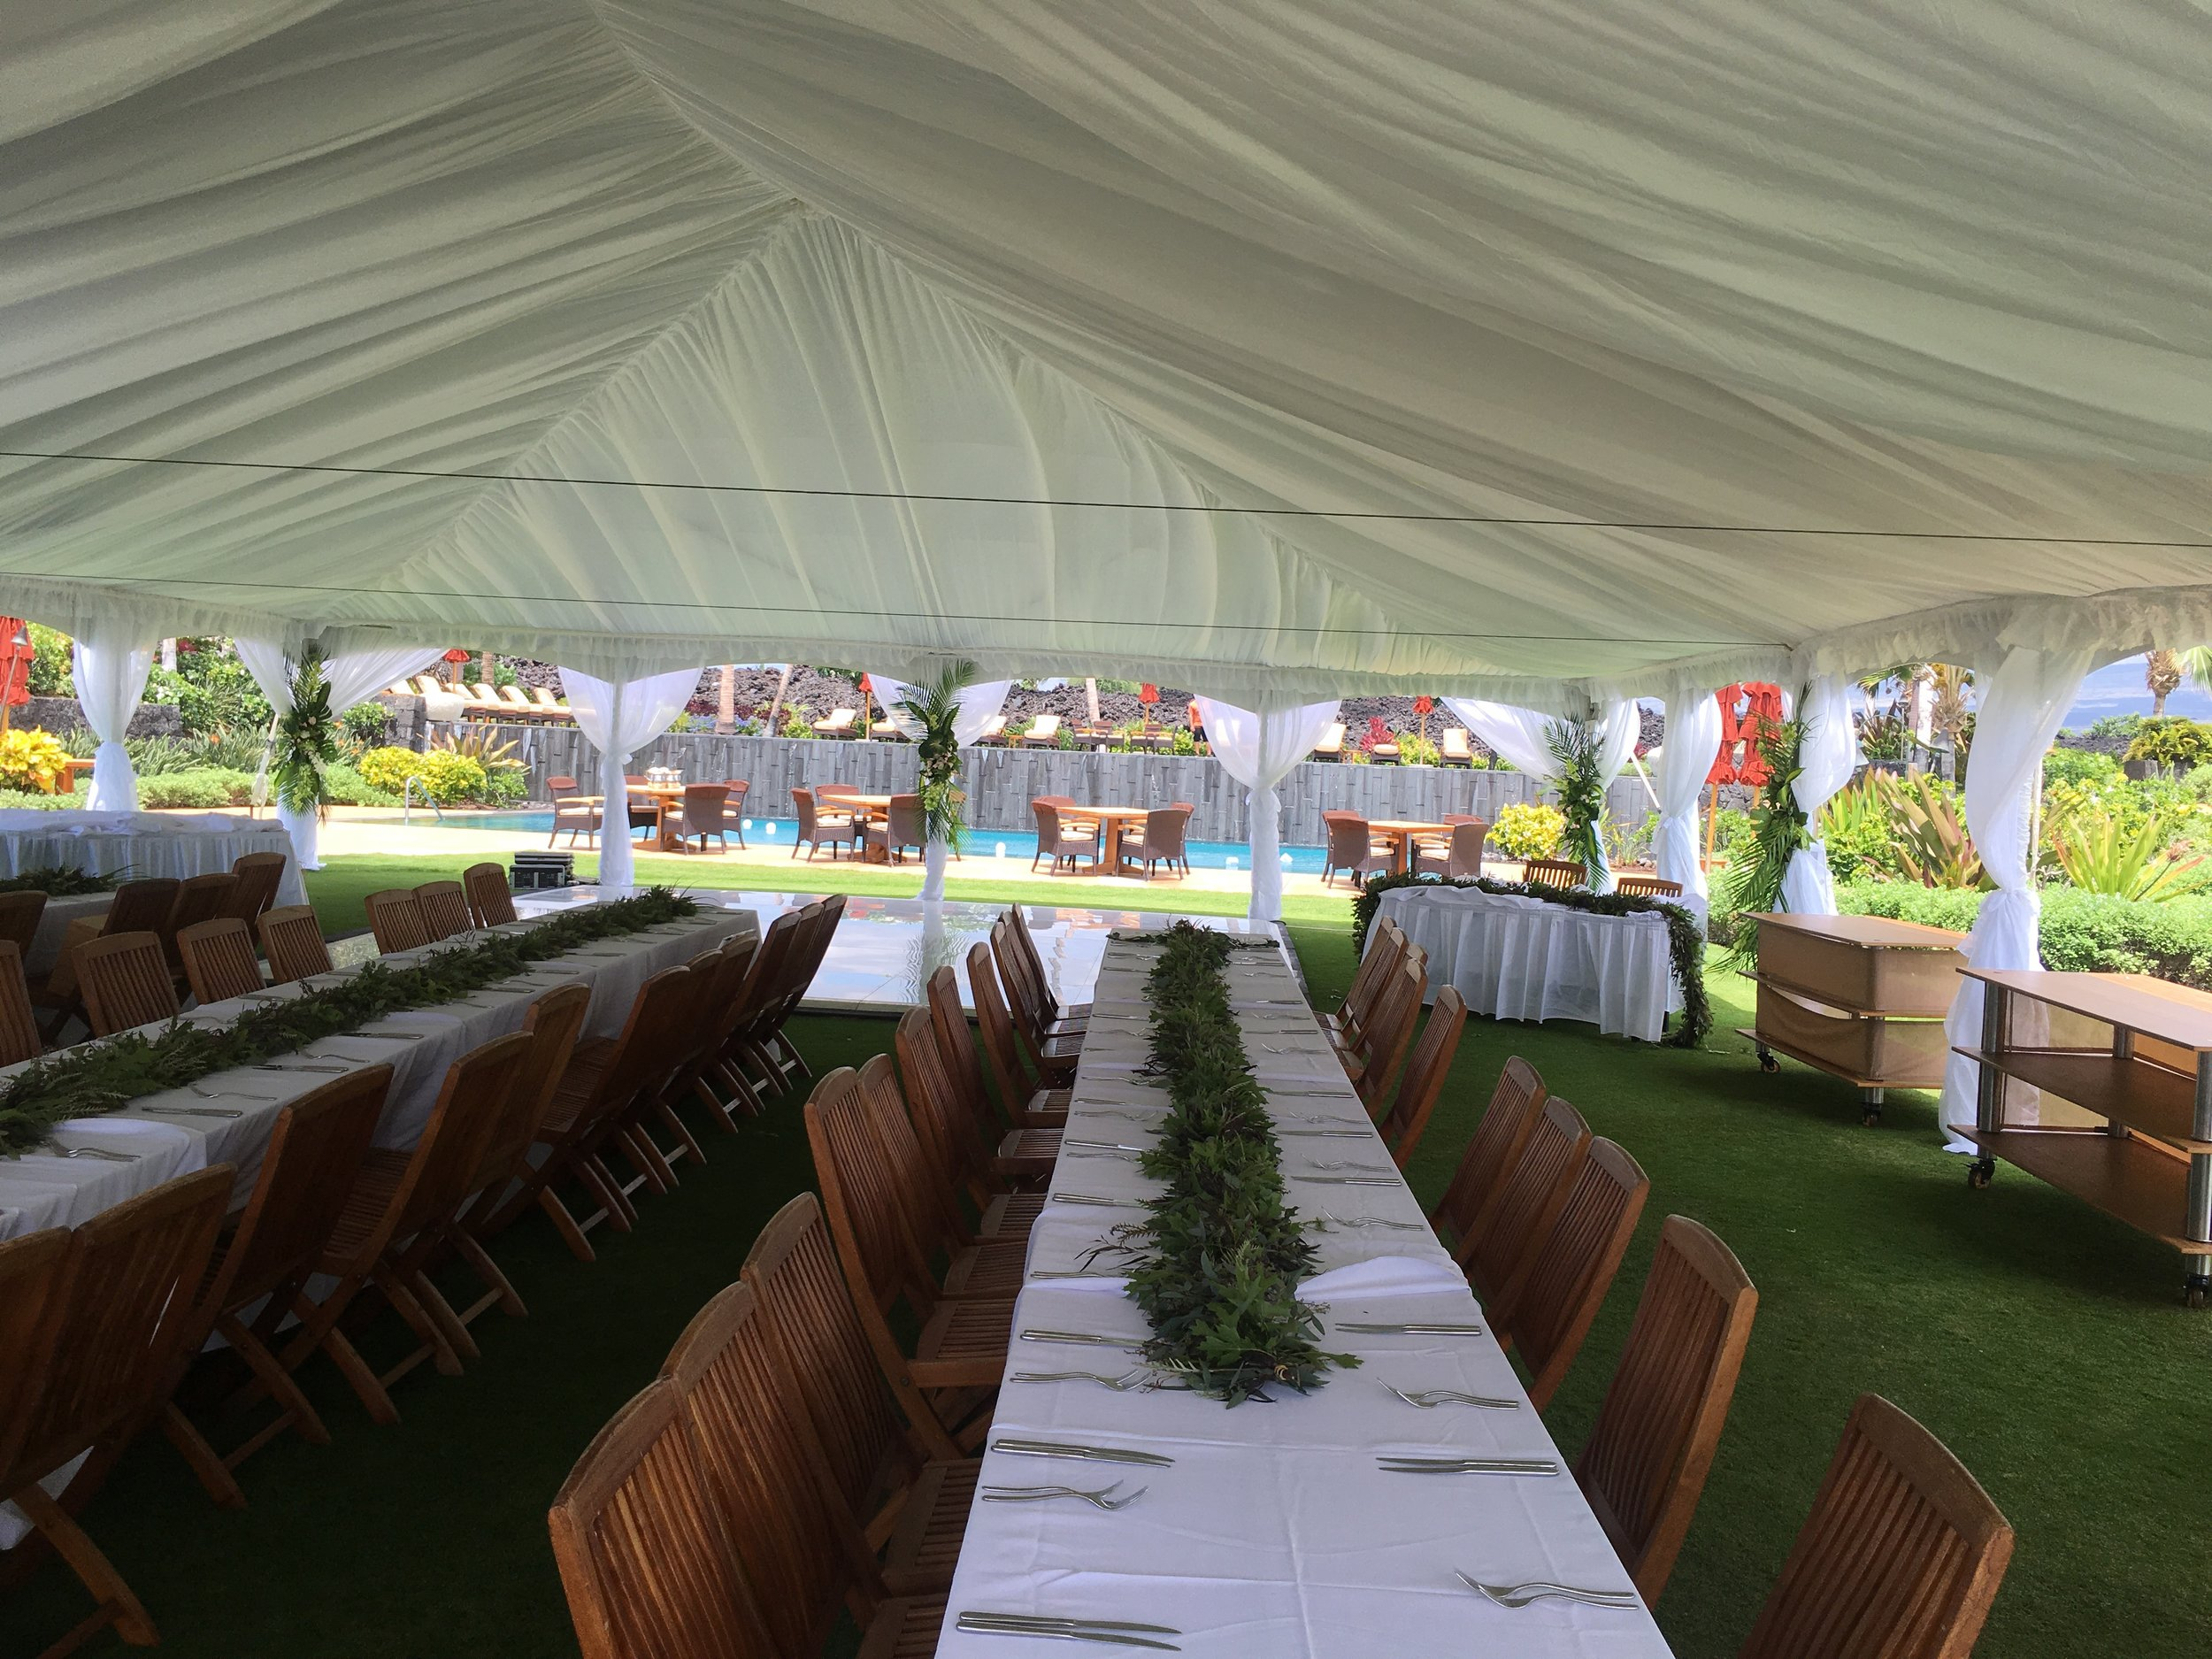 Full Interior Tent Liner with Wide White Leg Drapes.